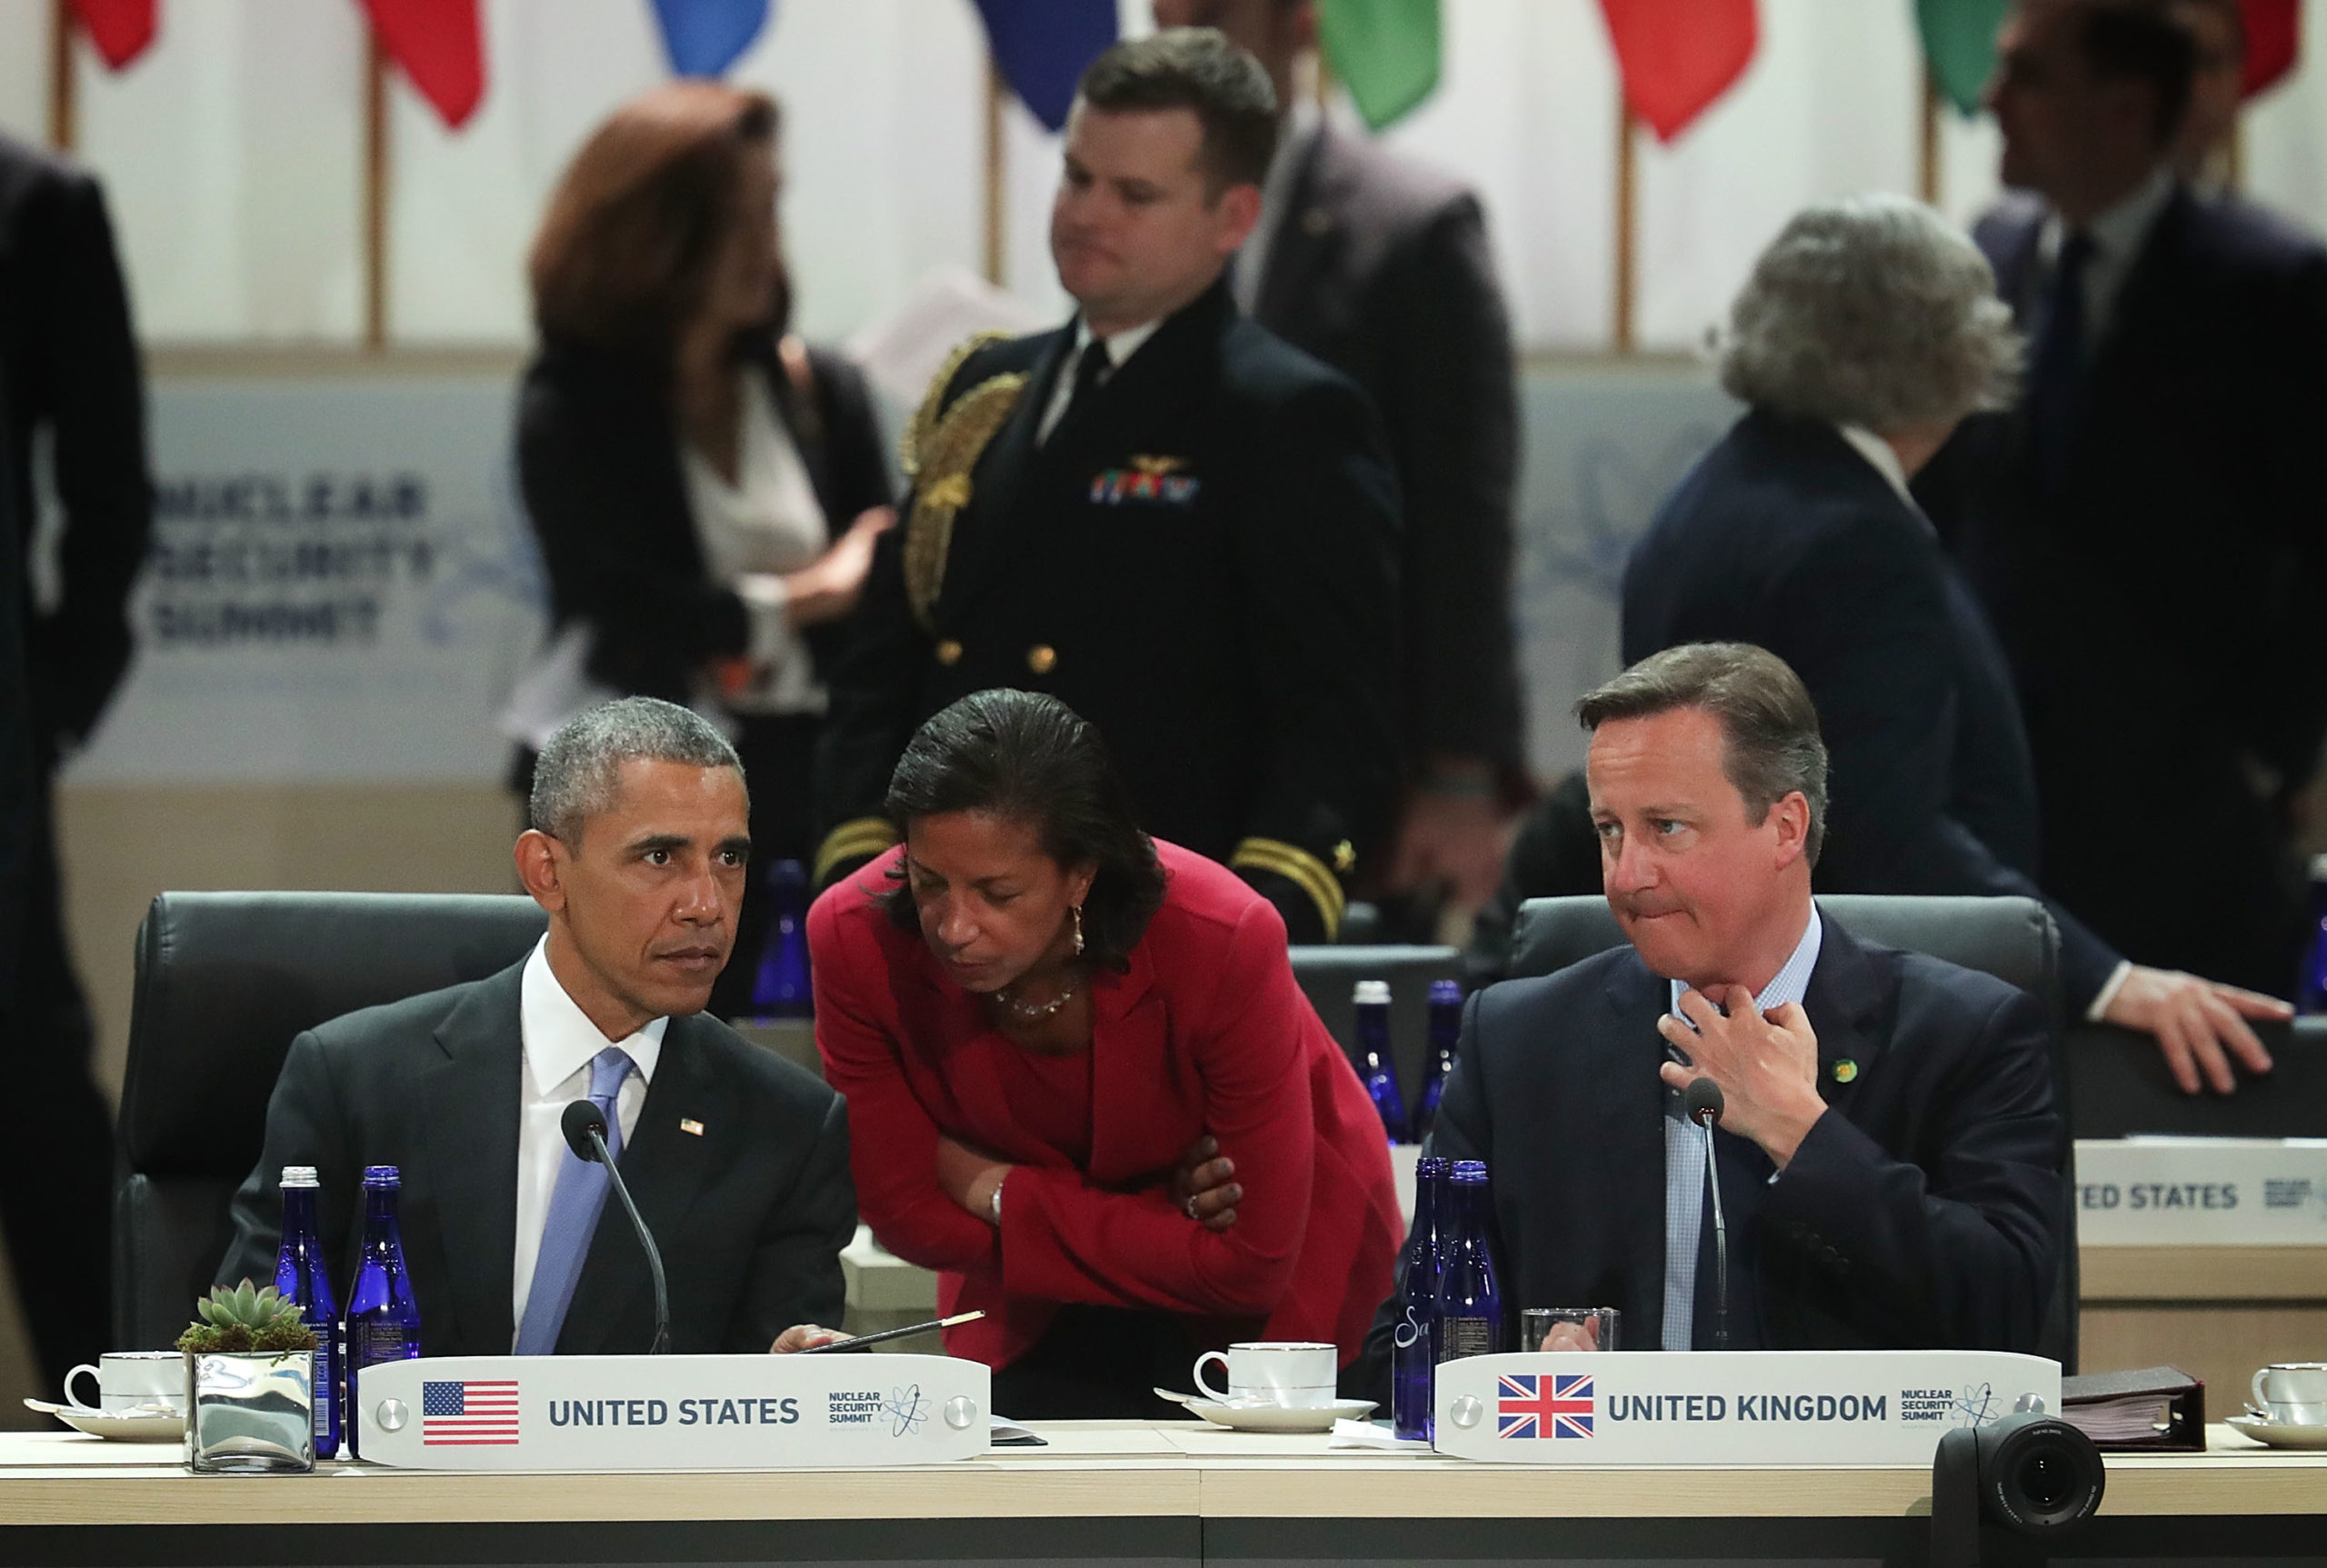 WASHINGTON, DC - APRIL 01: (L-R) U.S. President Barack Obama talks to National Security Adviser Susan Rice as Prime Minister of the United Kingdom David Cameron looks on during a scenario-based policy discussion of the 2016 Nuclear Security Summit April 1, 2016 in Washington, DC. U.S. President Barack Obama is hosting the fourth and final in a series of summits to highlight accomplishments and make new commitments towards reducing the threat of nuclear terrorism. (Alex Wong/Getty Images)